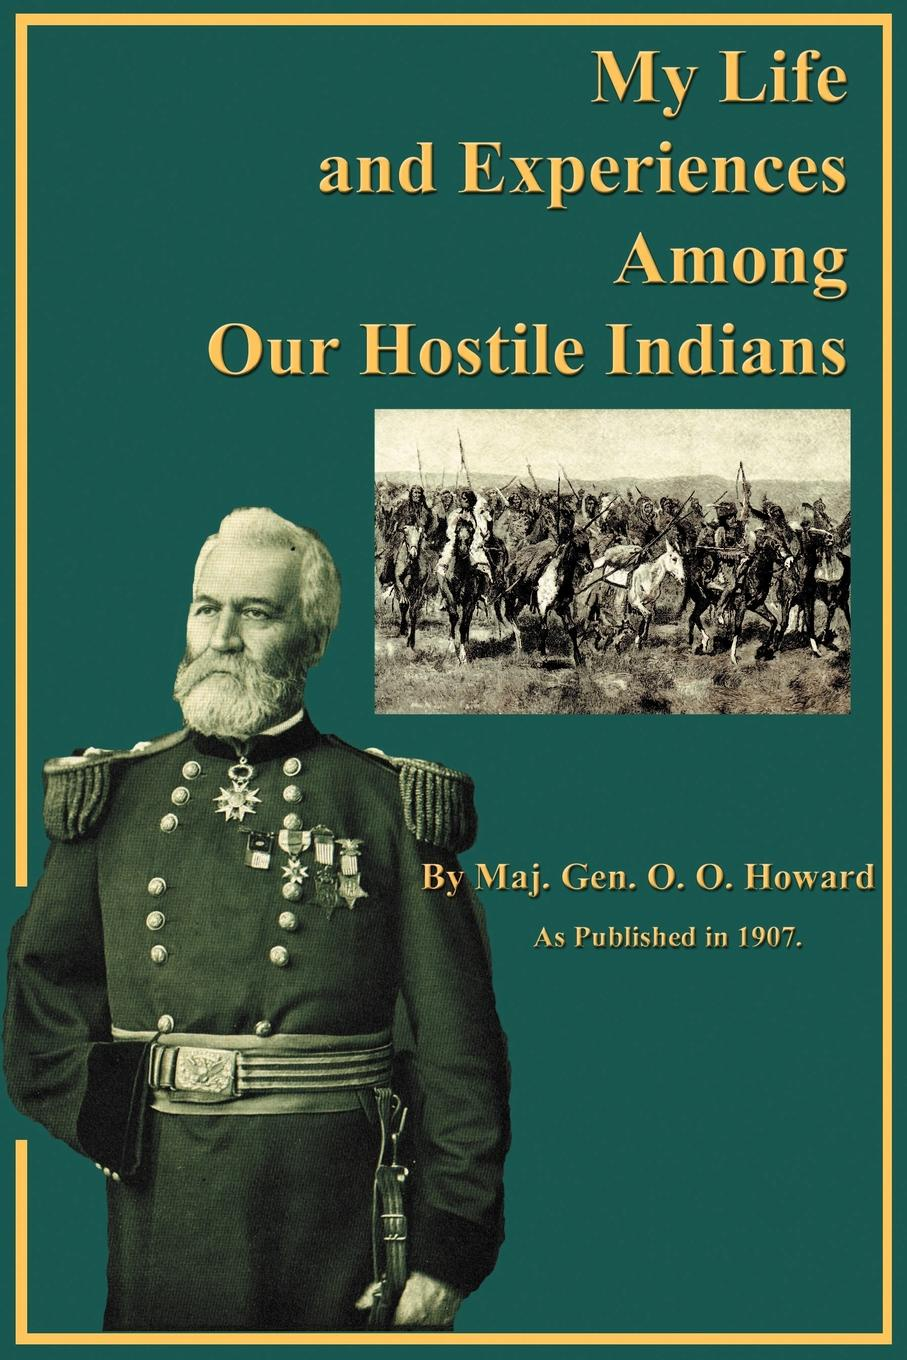 O. O. Howard My Life and Experiences Among Our Hostile Indians. A Record of Personal Observations, Adventures, and Campaigns Among the Indians of the Great West benjamin armstrong early life among the indians reminiscences from the life of benj g armstrong